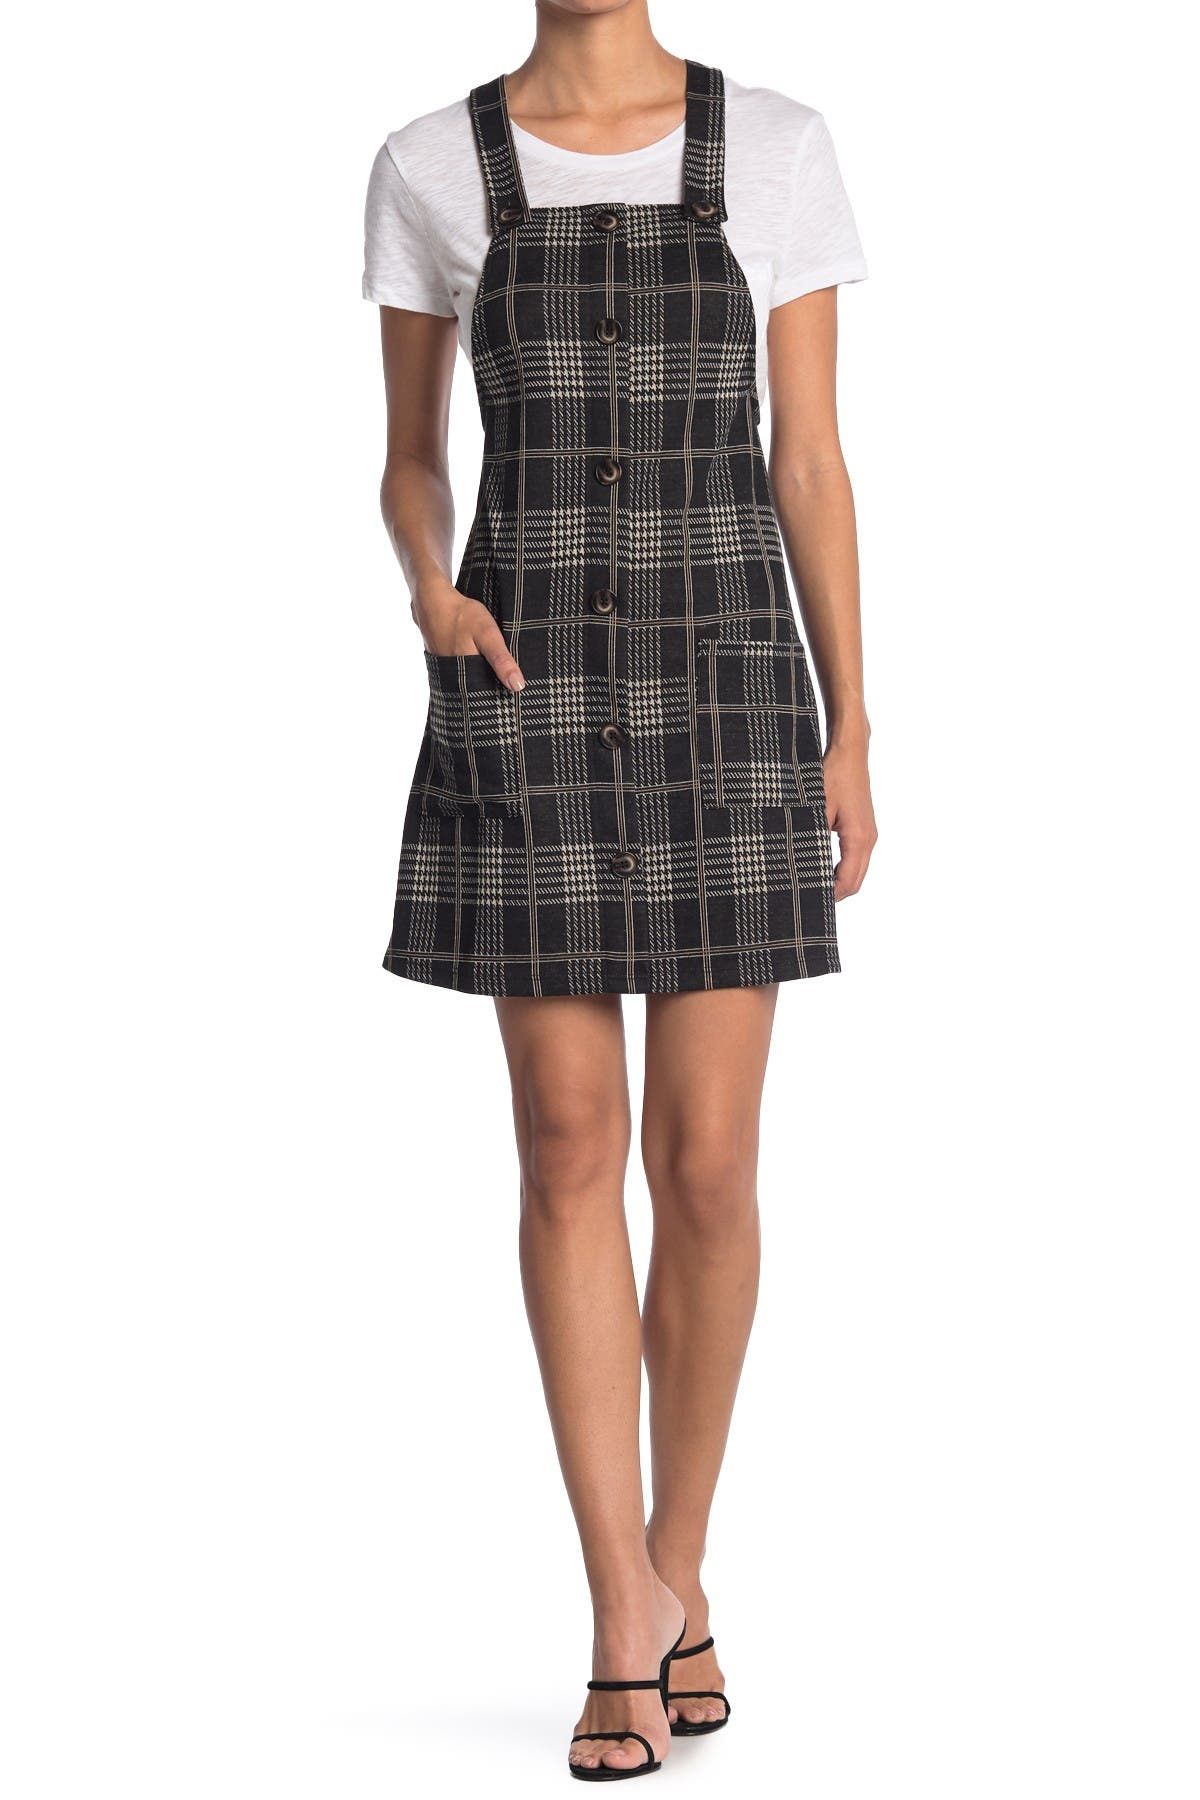 Image of KENEDIK Plaid Double Knit Overall Dress